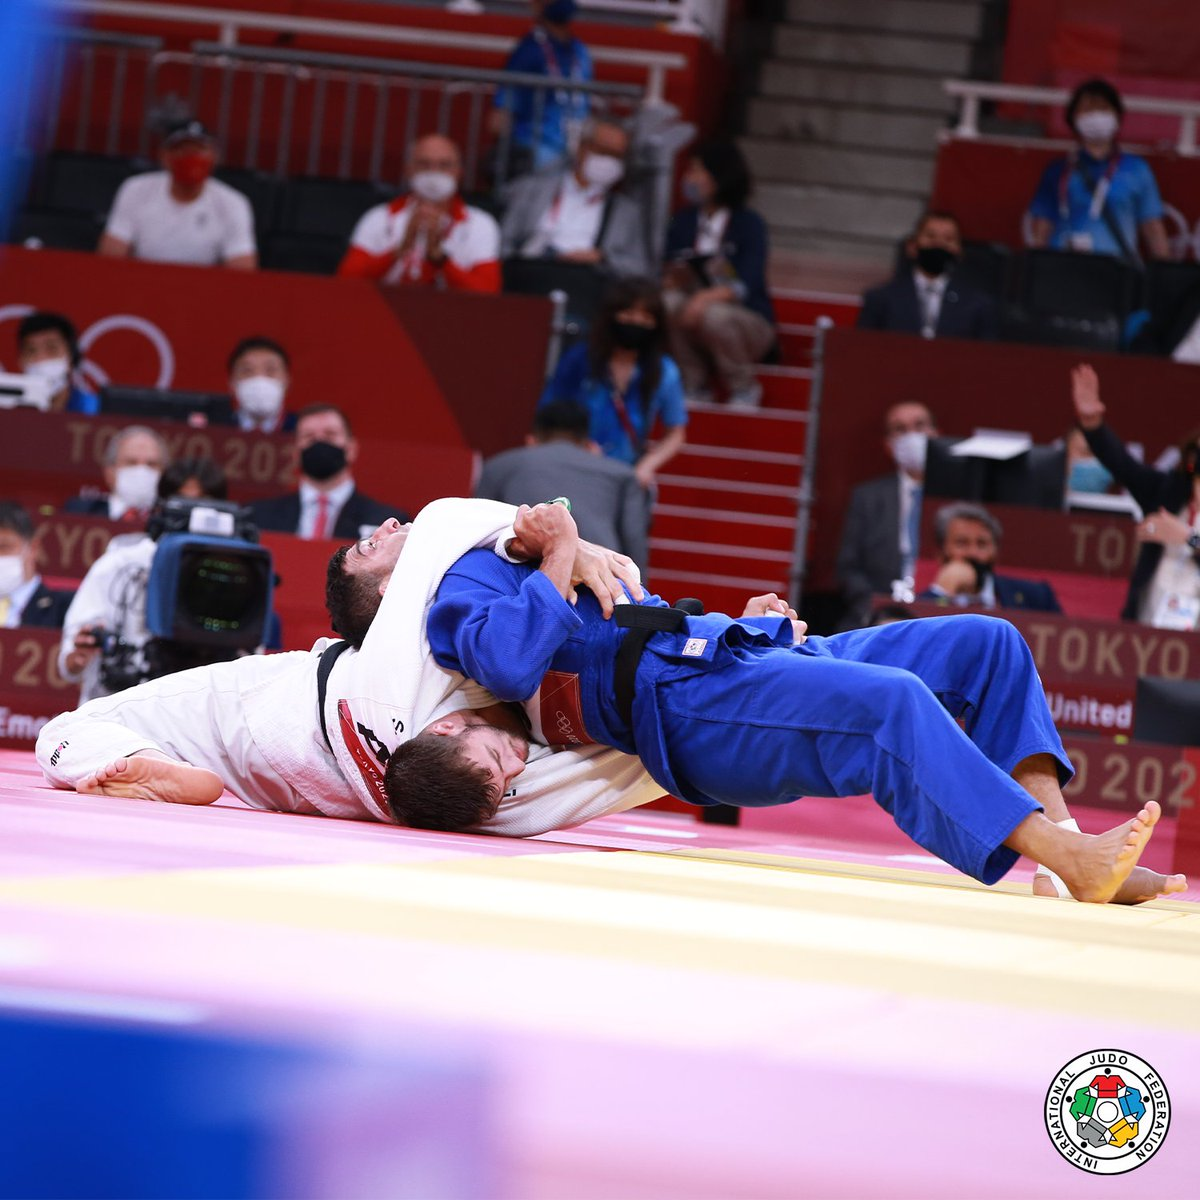 Saeid Mollaei fights for his life to earn a place in the Olympic final! Can this story get any better?    #Tokyo2020 #UntiedByEmotion #Judo #StrongerTogether #Olympics @olympics @tokyo2020